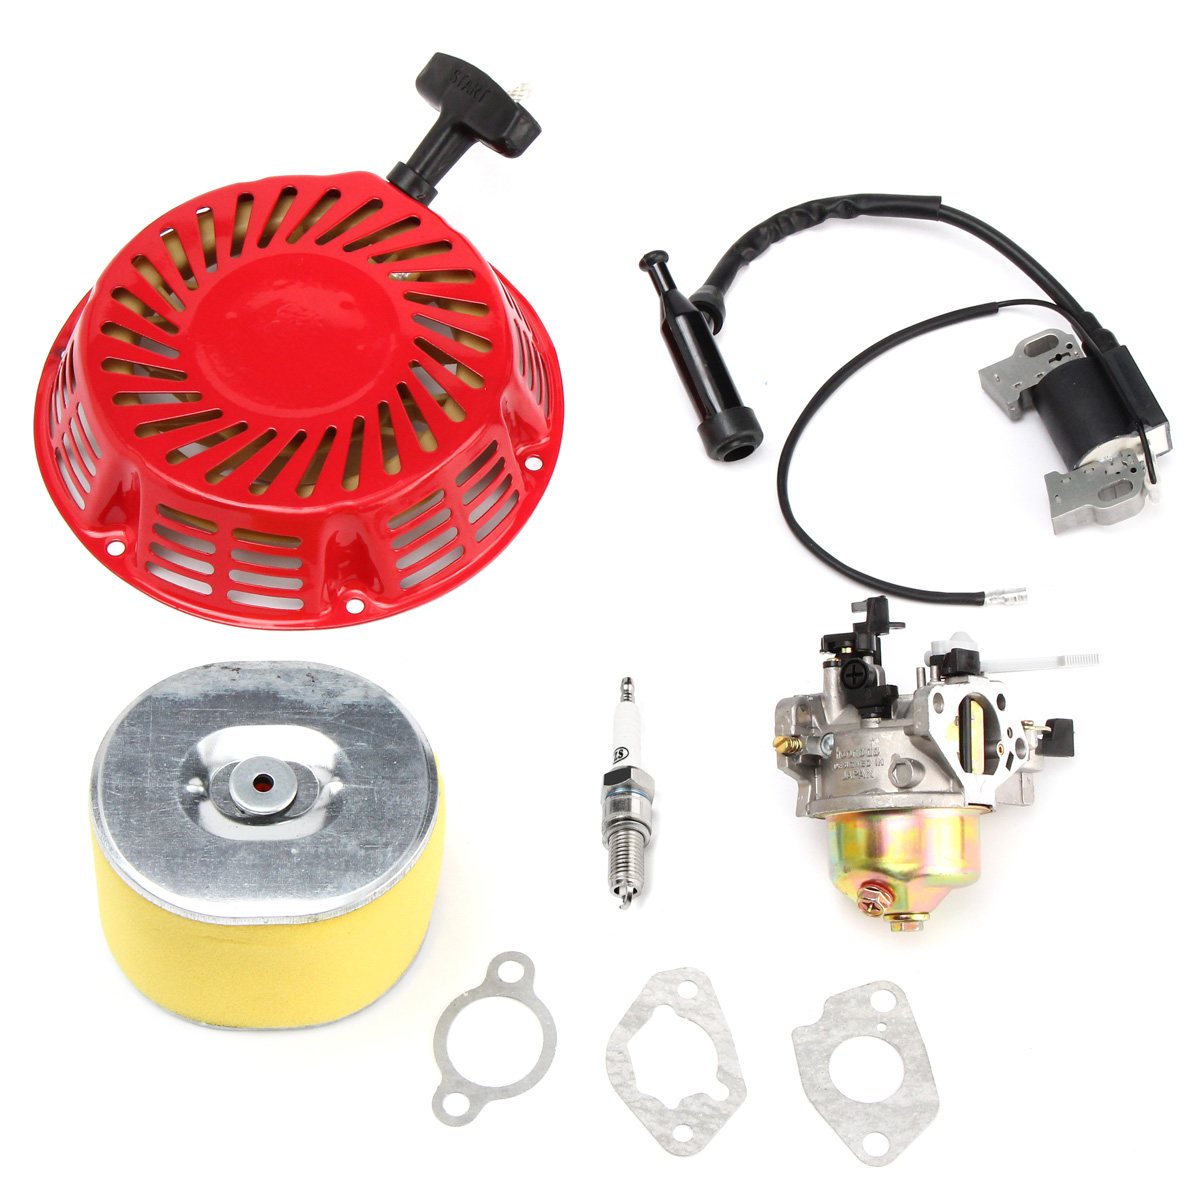 Replacement Carburetor Recoil Air Filter Ignition Coil Plug for Honda GX240 8HP GX270 9HP